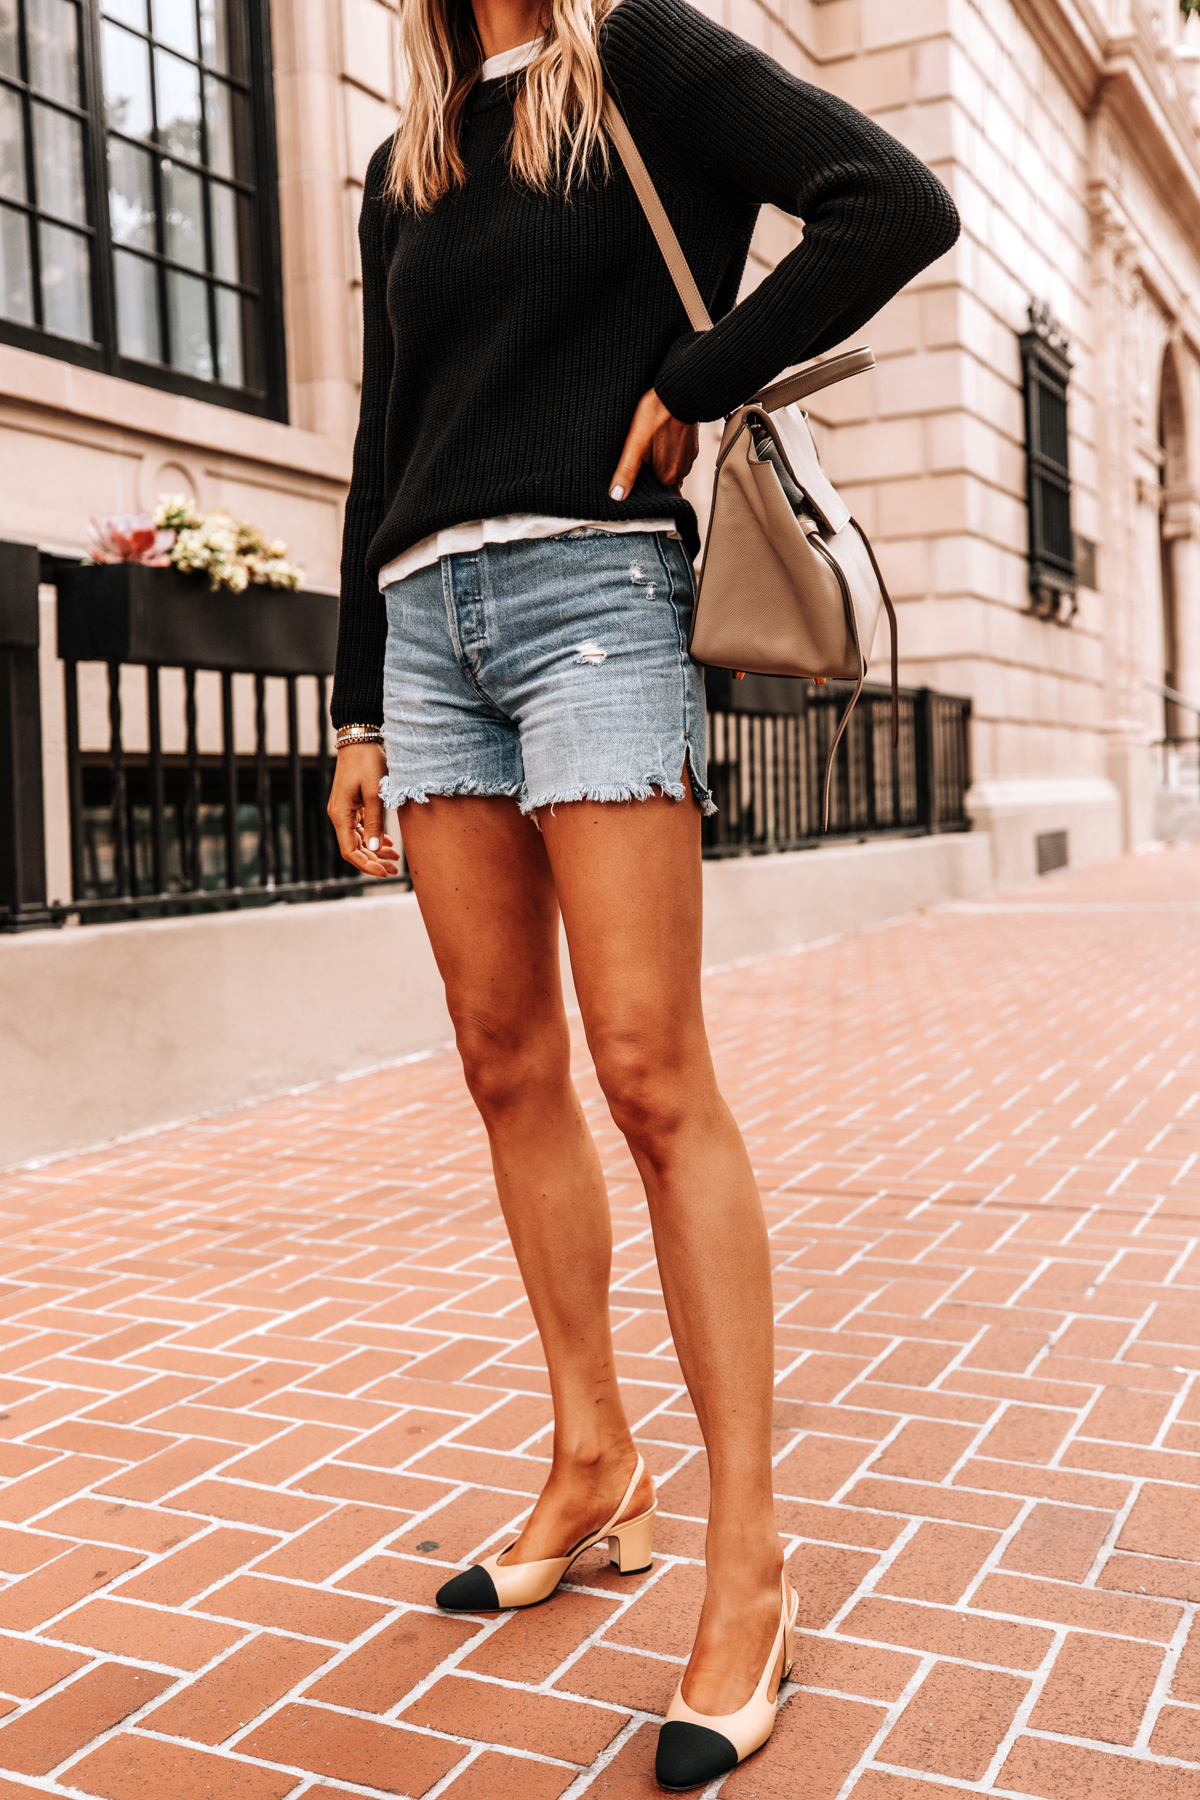 Fashion Jackson Wearing Jenni Kayne Black Fisherman Sweater Denim Shorts Chanel Slingbacks 1